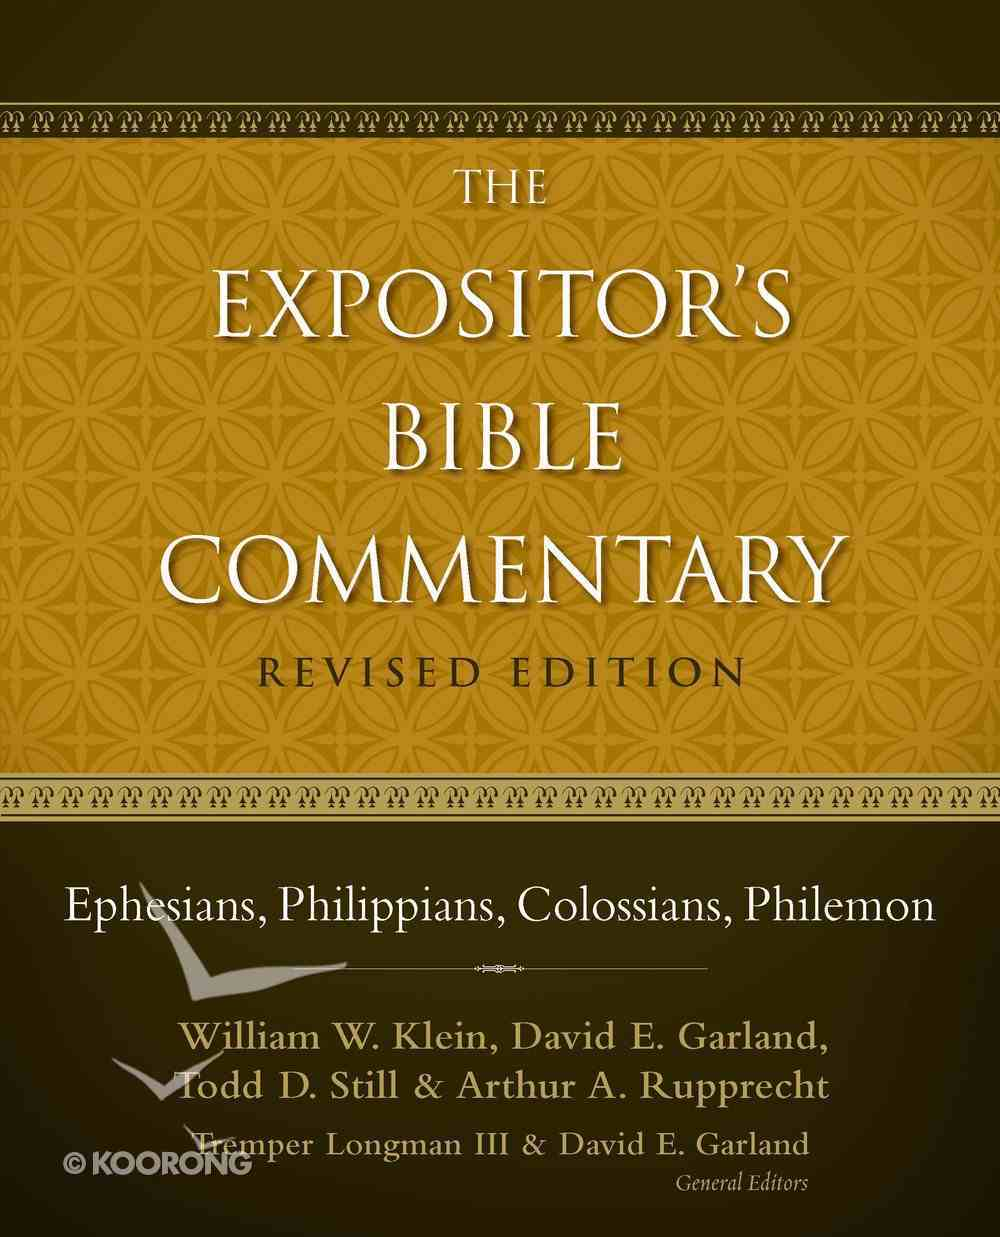 Ephesians, Philippians, Colossians, Philemon (#12 in Expositor's Bible Commentary Revised Series) eBook